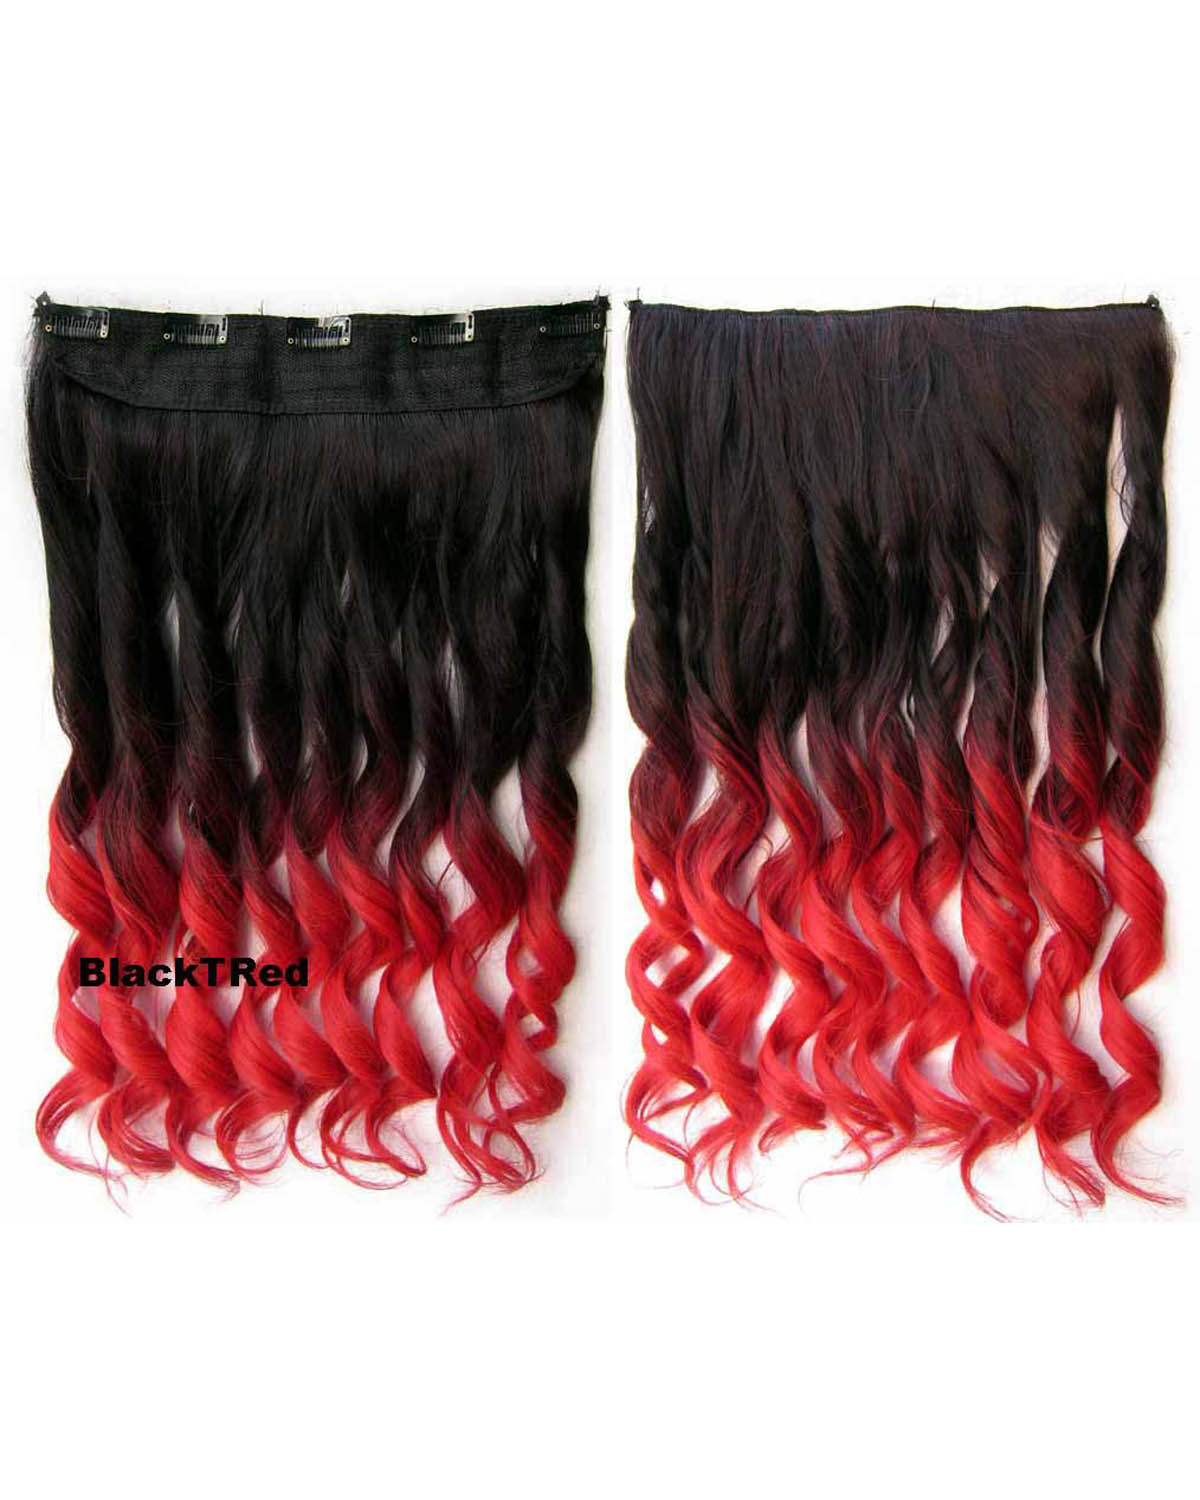 24 Inch Women Street Fashional Body Wave Curly Long One Piece 5 Clips Clip in Synthetic Hair Ombre Dip dye BlackTRed